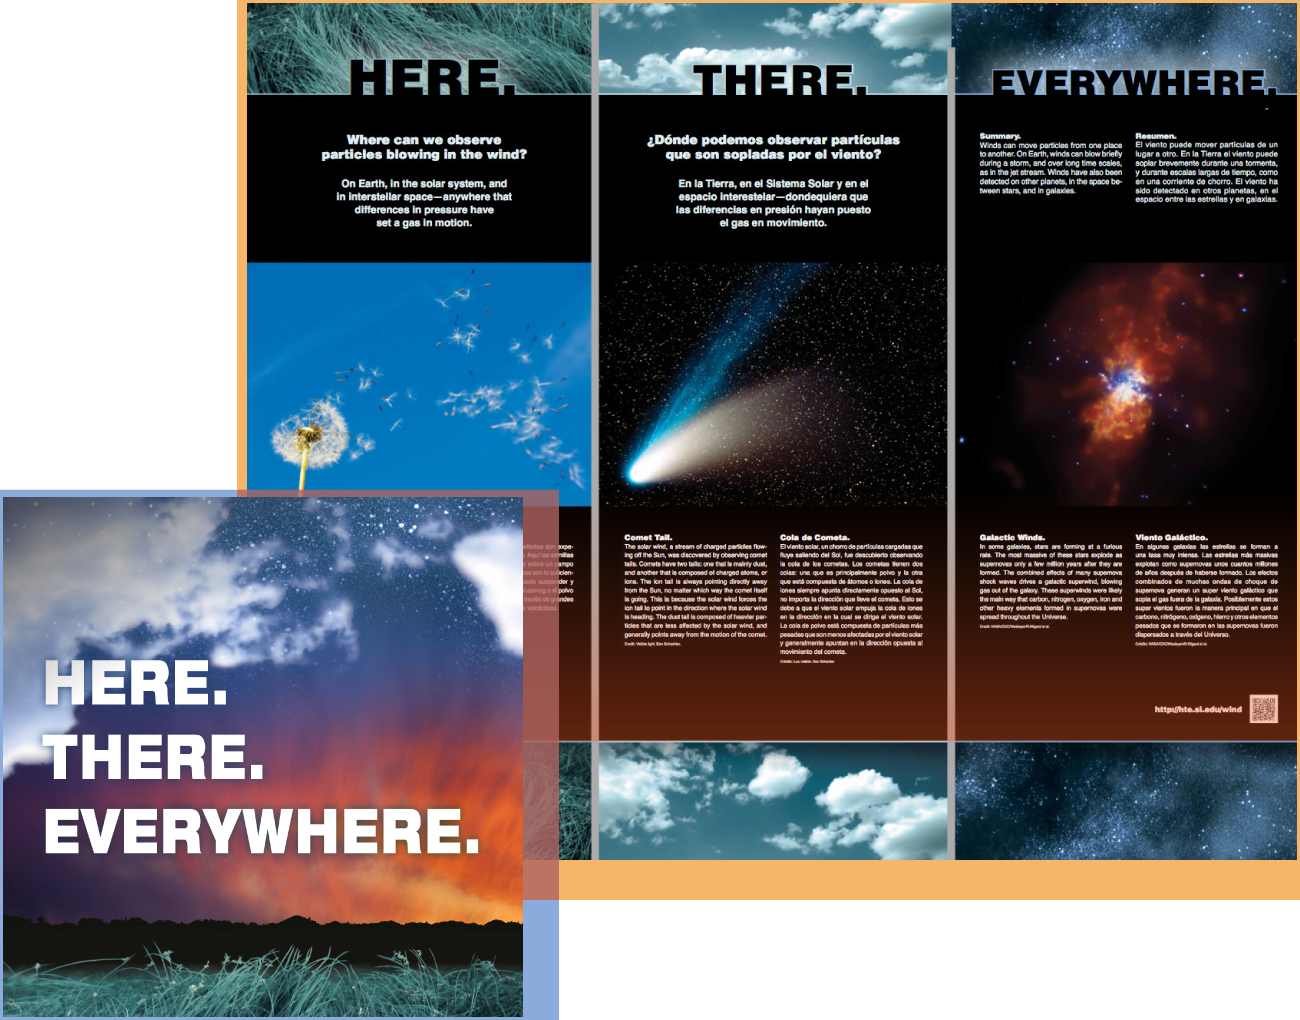 Here, There, Everywhere - This program connects science content in the fields of Earth science, planetary science, and astrophysics with everyday phenomena. Its purpose is to demonstrate the universality of physical laws and the connection between our everyday world and the universe as a whole to members of the public who may not identify strongly with science.Audience: All LearnersWebsite: Here, There, Everywhere projectExhibit material: Information for venues (webpage)